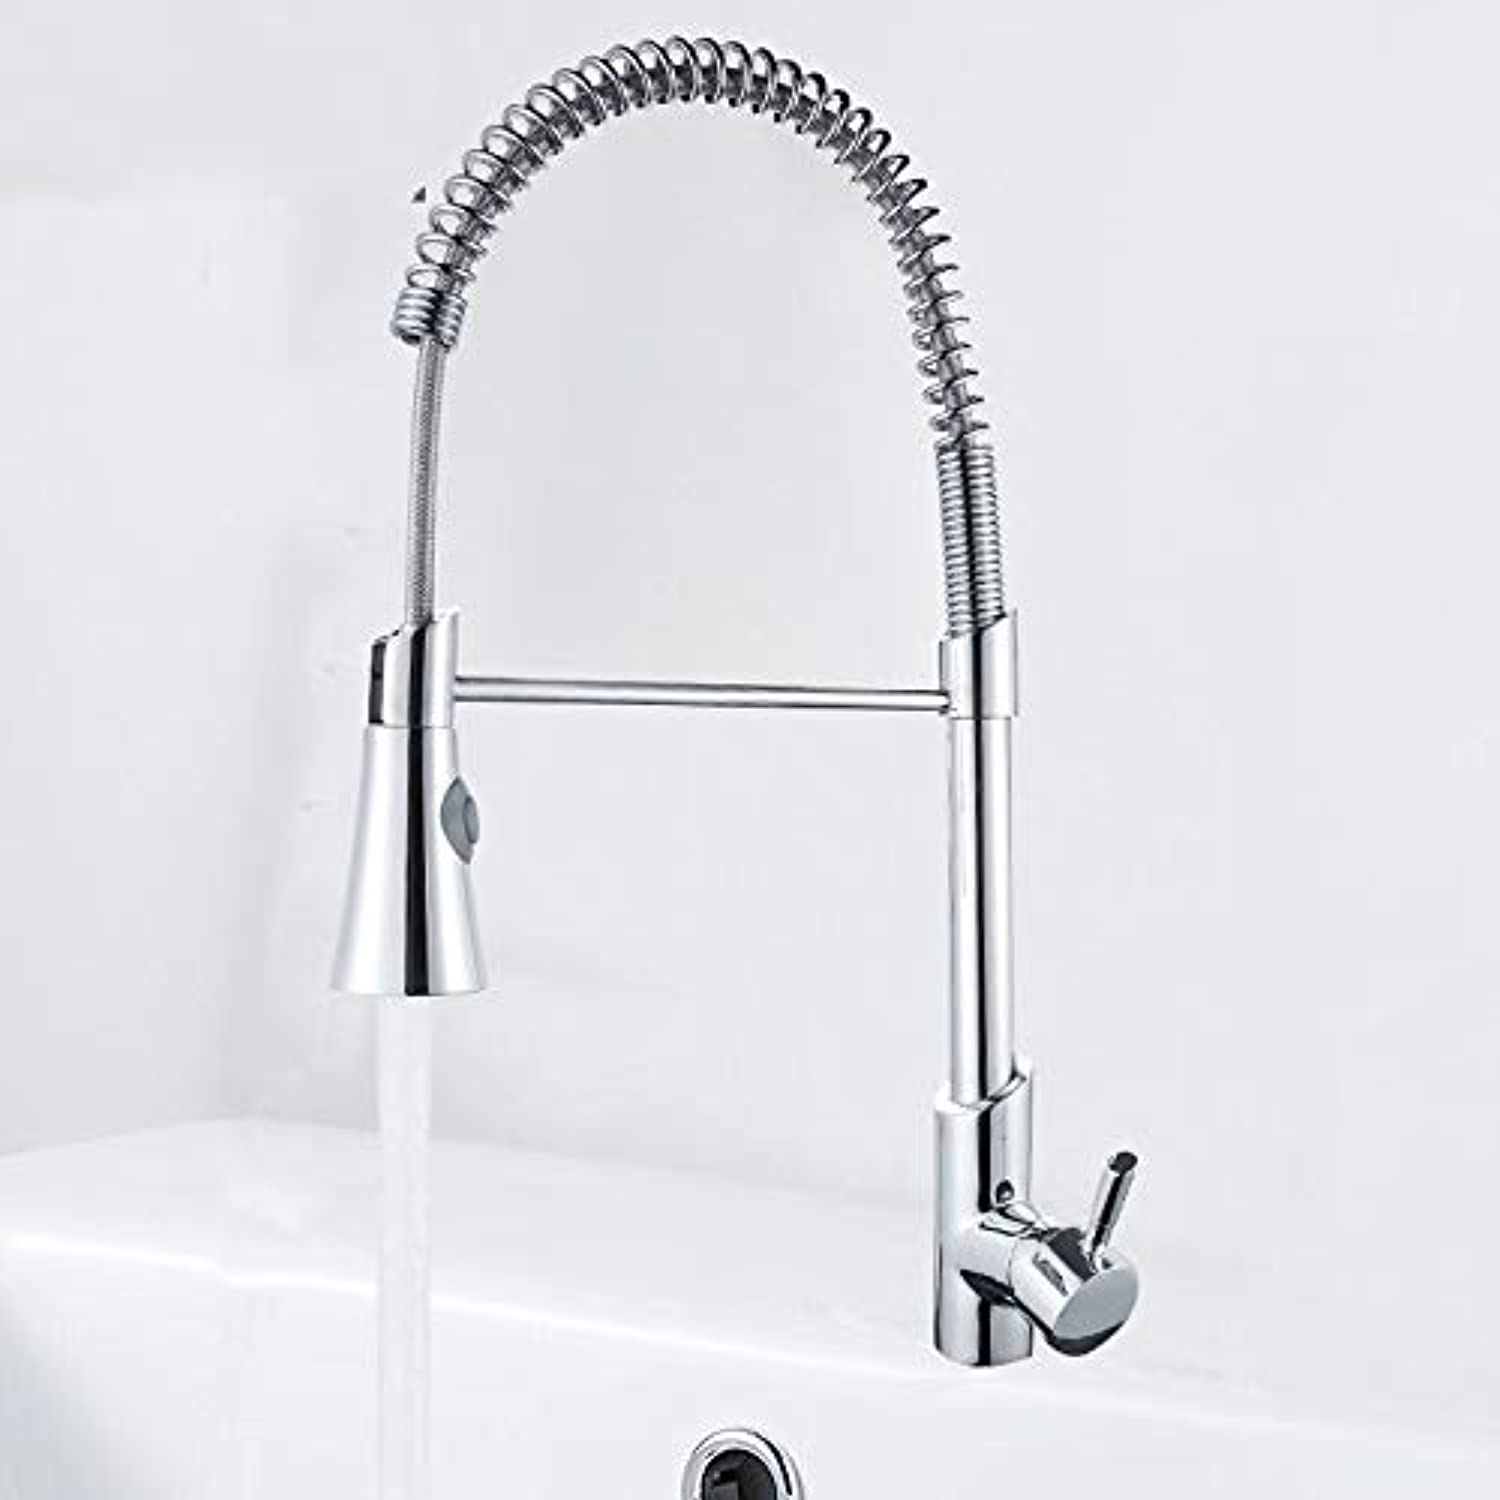 redOOY Taps Faucet Kitchen Sink Dish Basin Kitchen Mixing Spring Faucet Single-Connected Spring Can Pull The Vegetable Basin Copper Faucet